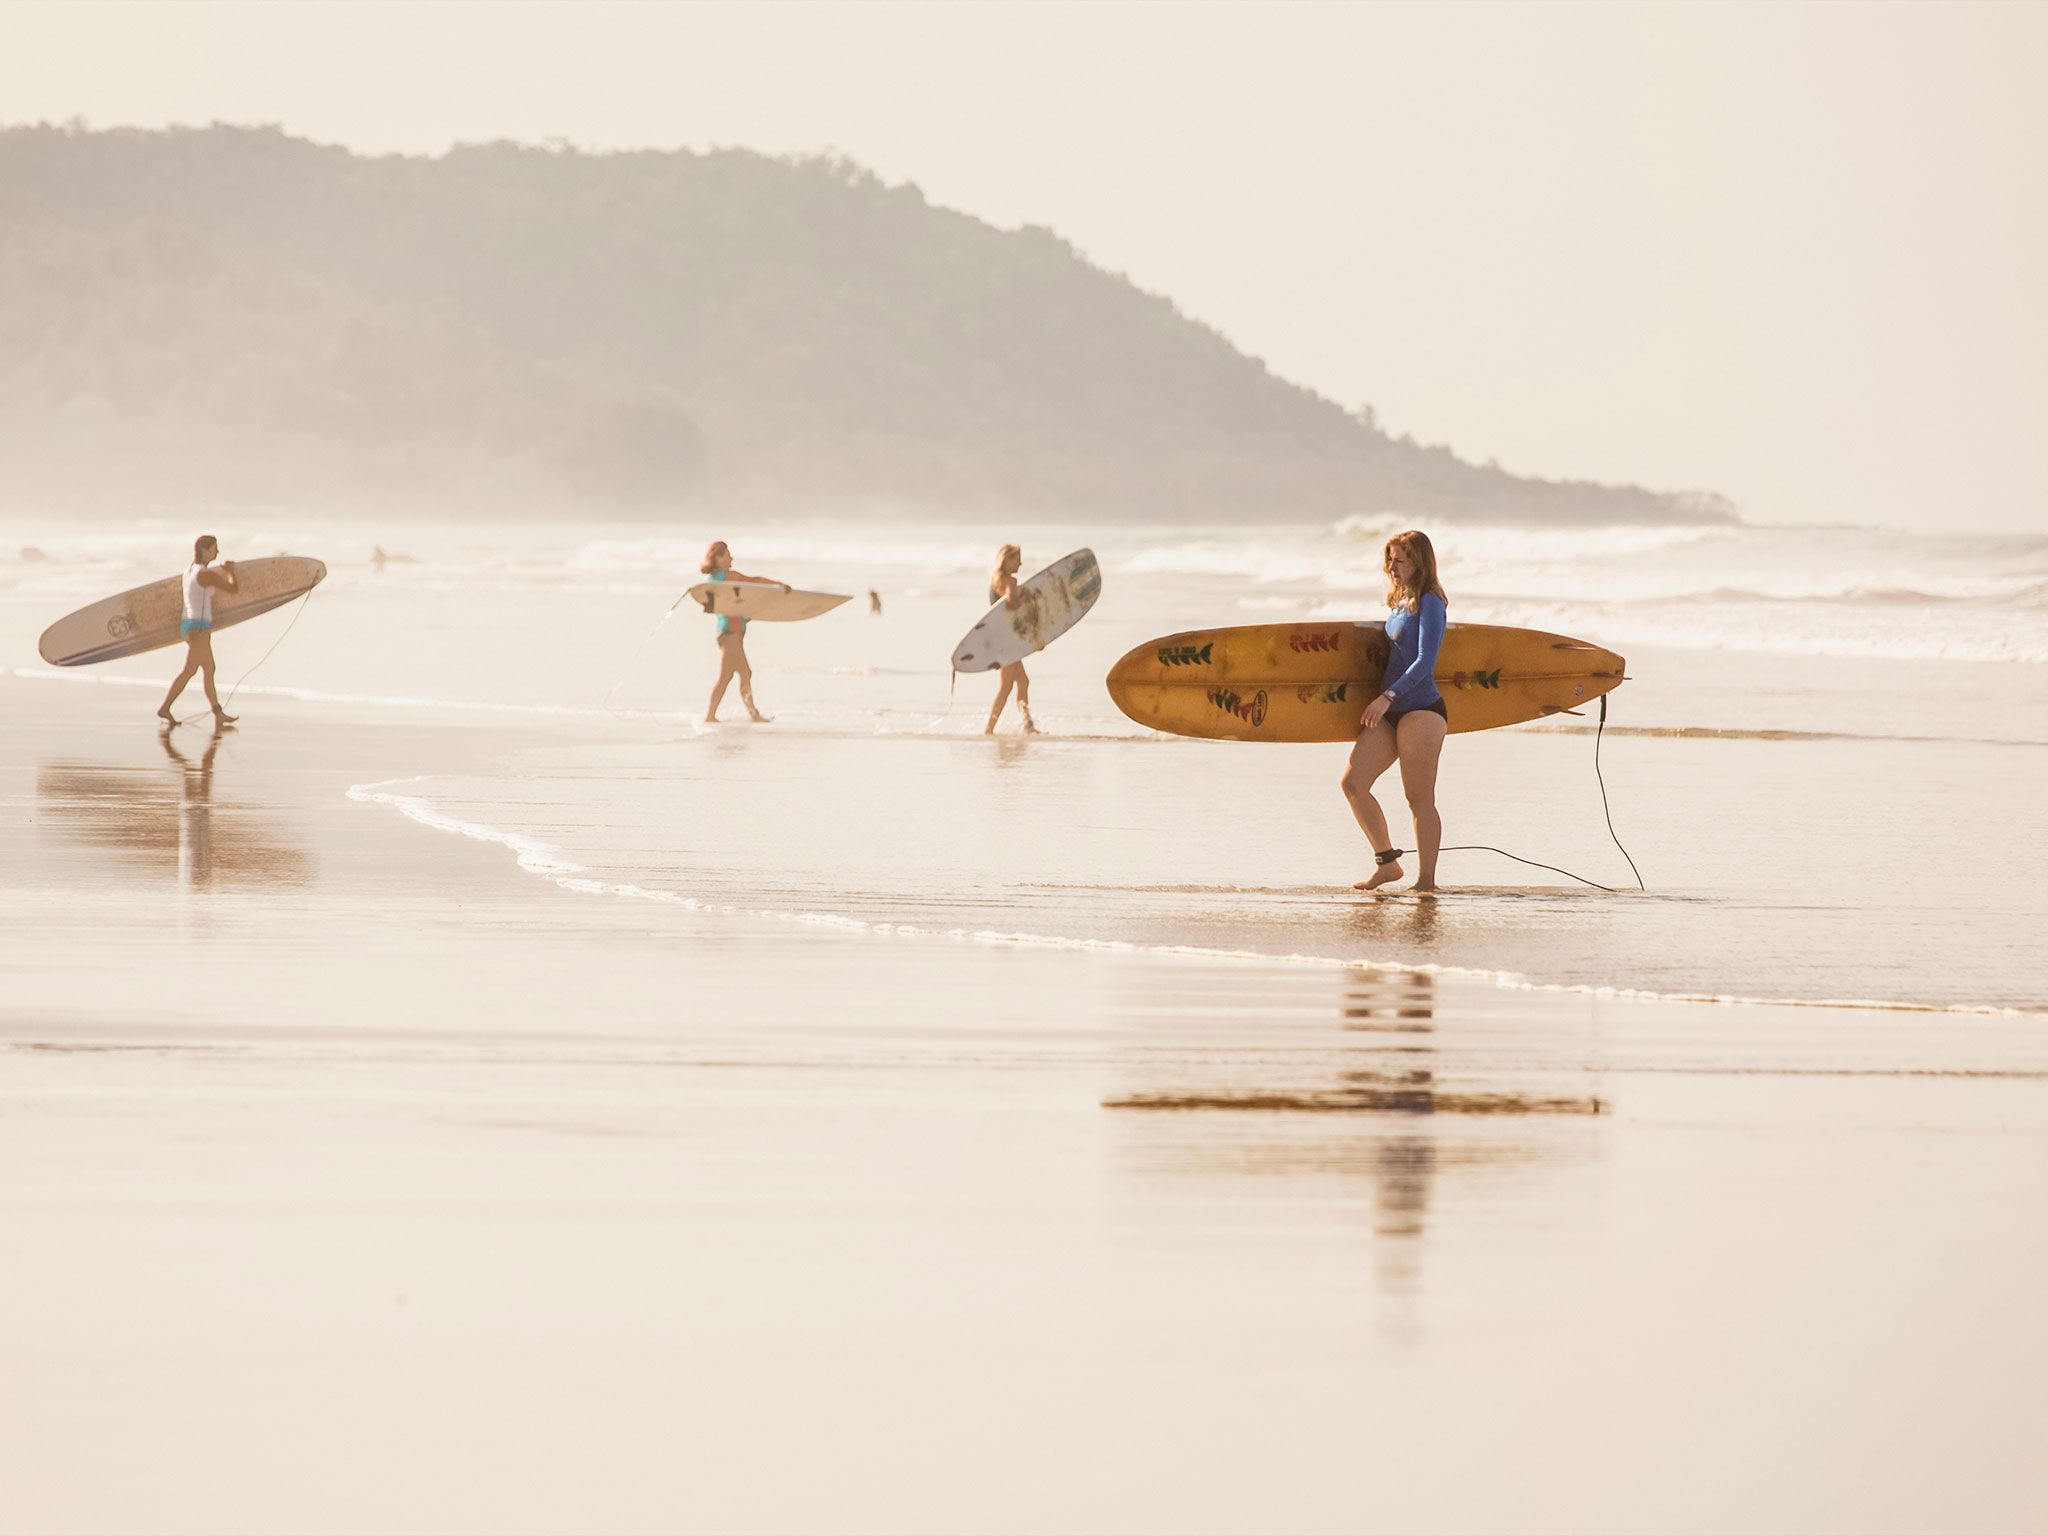 Top 15 Places to Go in 2015 - Santa Teresa, Costa Rica - New direct flights into Liberia, in Guanacaste (like JetBlue's route from Boston), slash the drive time to this resort town